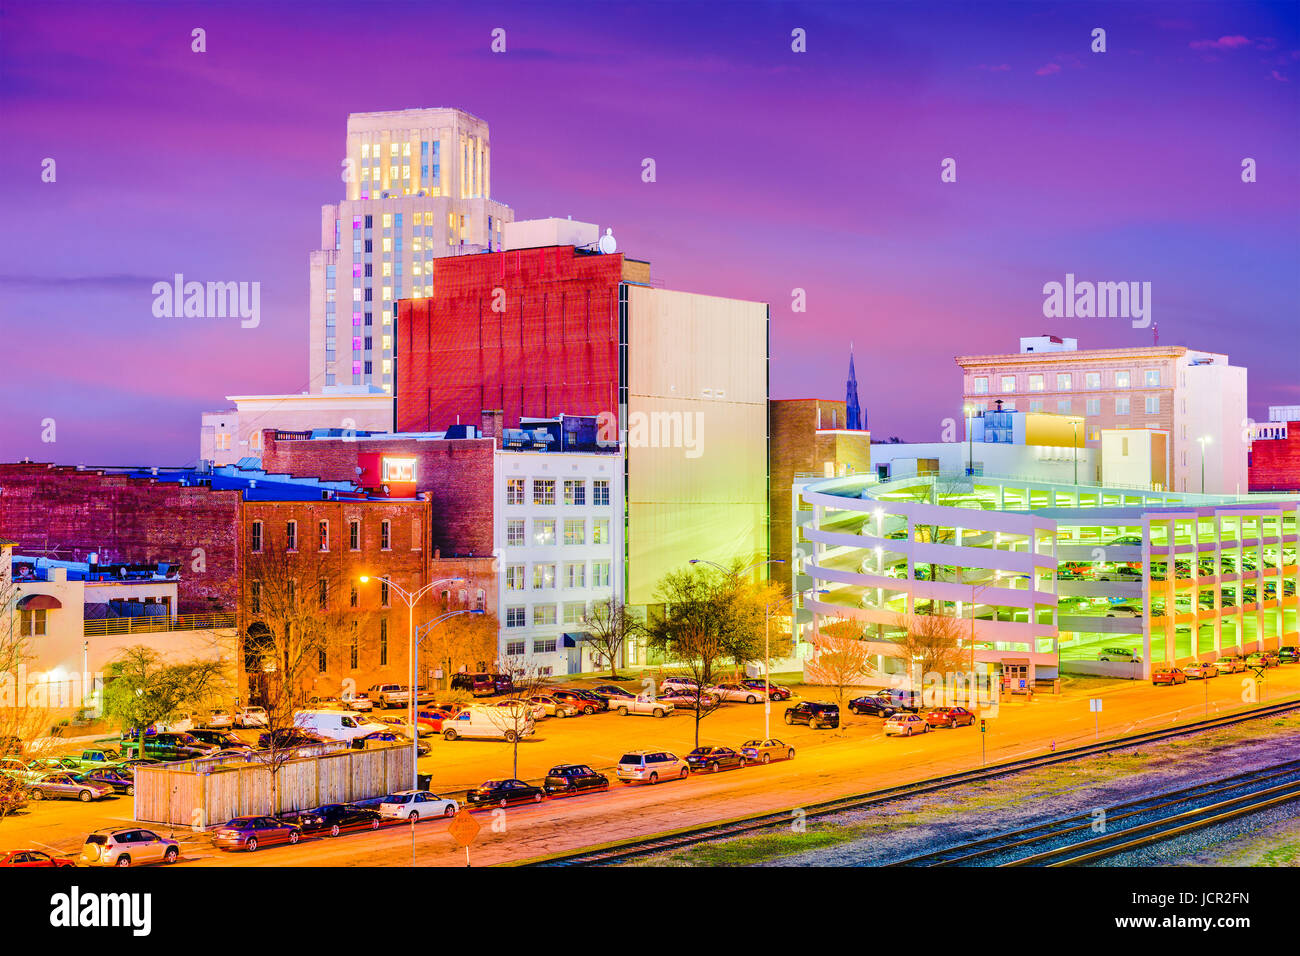 Durham, North Carolina, USA downtown skyline at twilight. - Stock Image